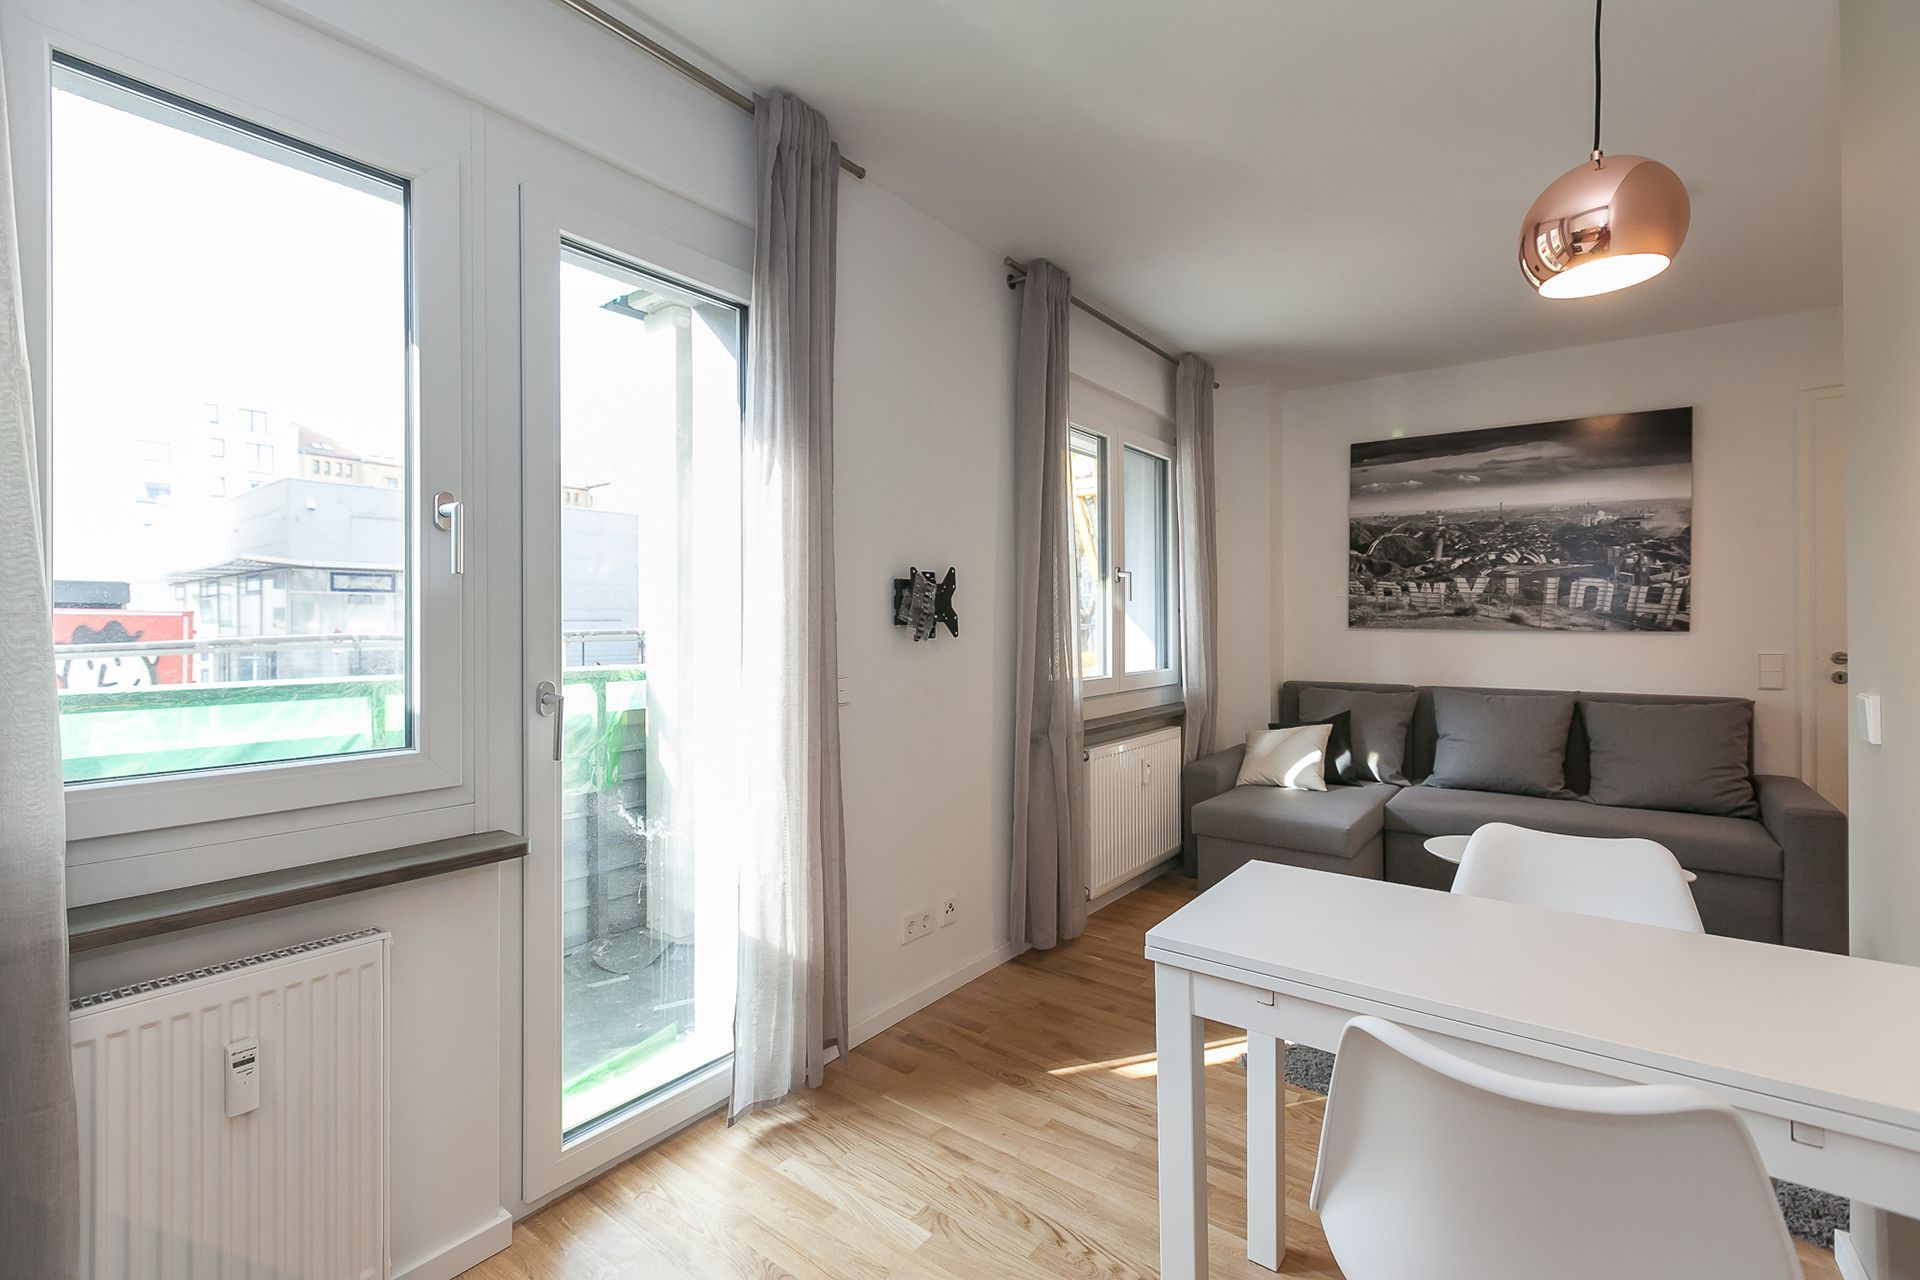 1 Bedroom - Large apartment to rent in Berlin KOEP-KOEP-0201-0